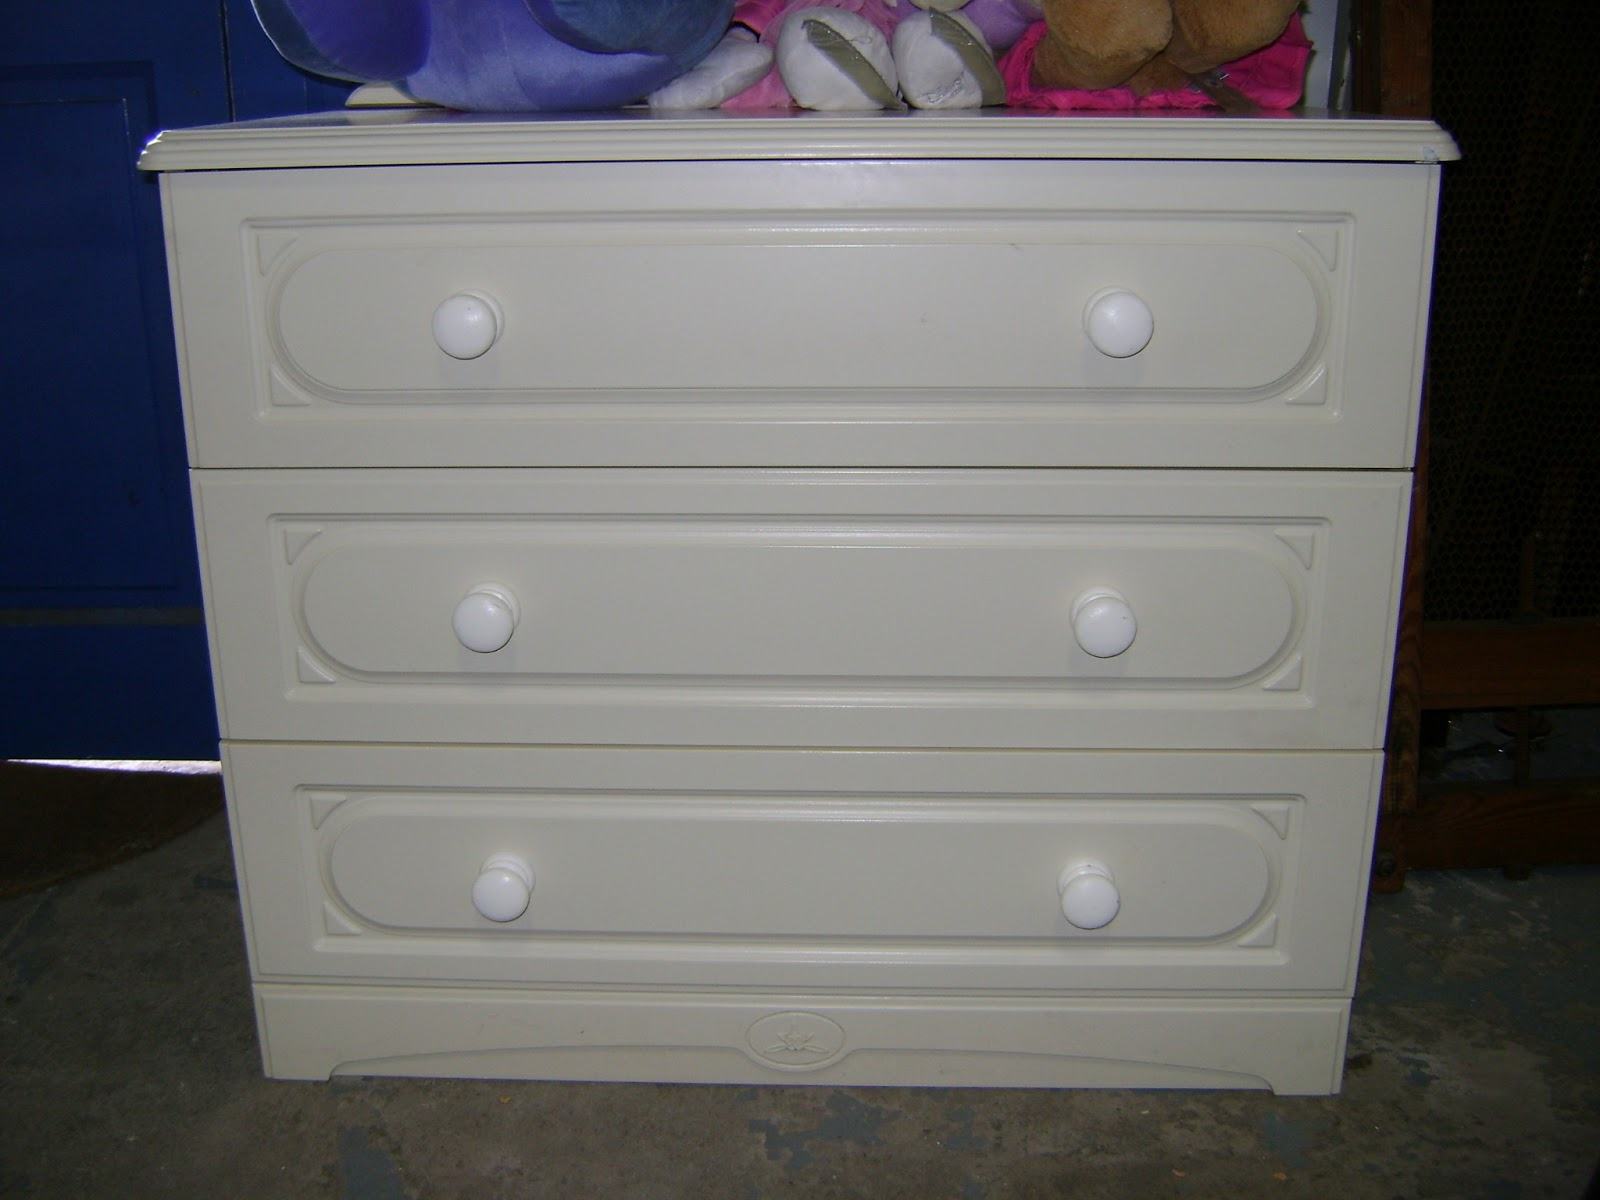 Deccie S Done Deal Second Hand Furniture House Clearances New Stock Update 31st March 2013 Chest Of Drawers Teddy S Baby Swing Set Of Gold Clubs Tiles Tv S Bedroom Cupboard Pc Desk